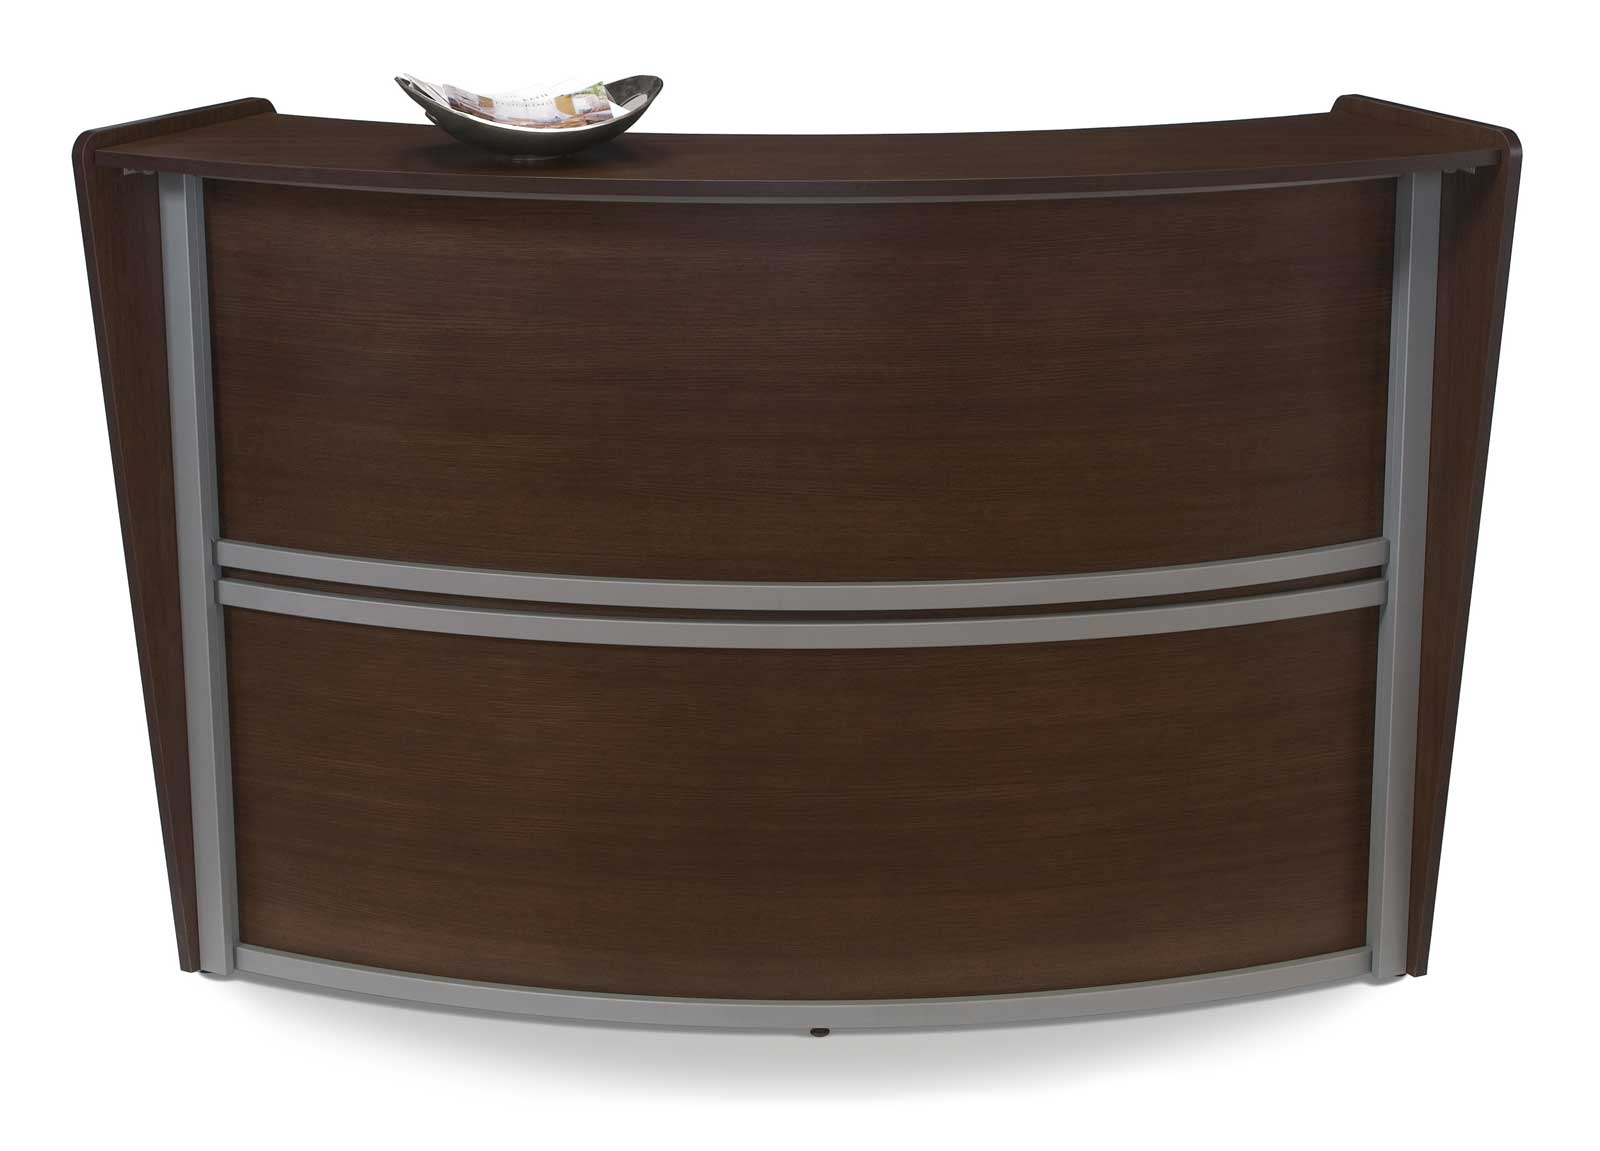 Single Walnut Stylish Reception Desk